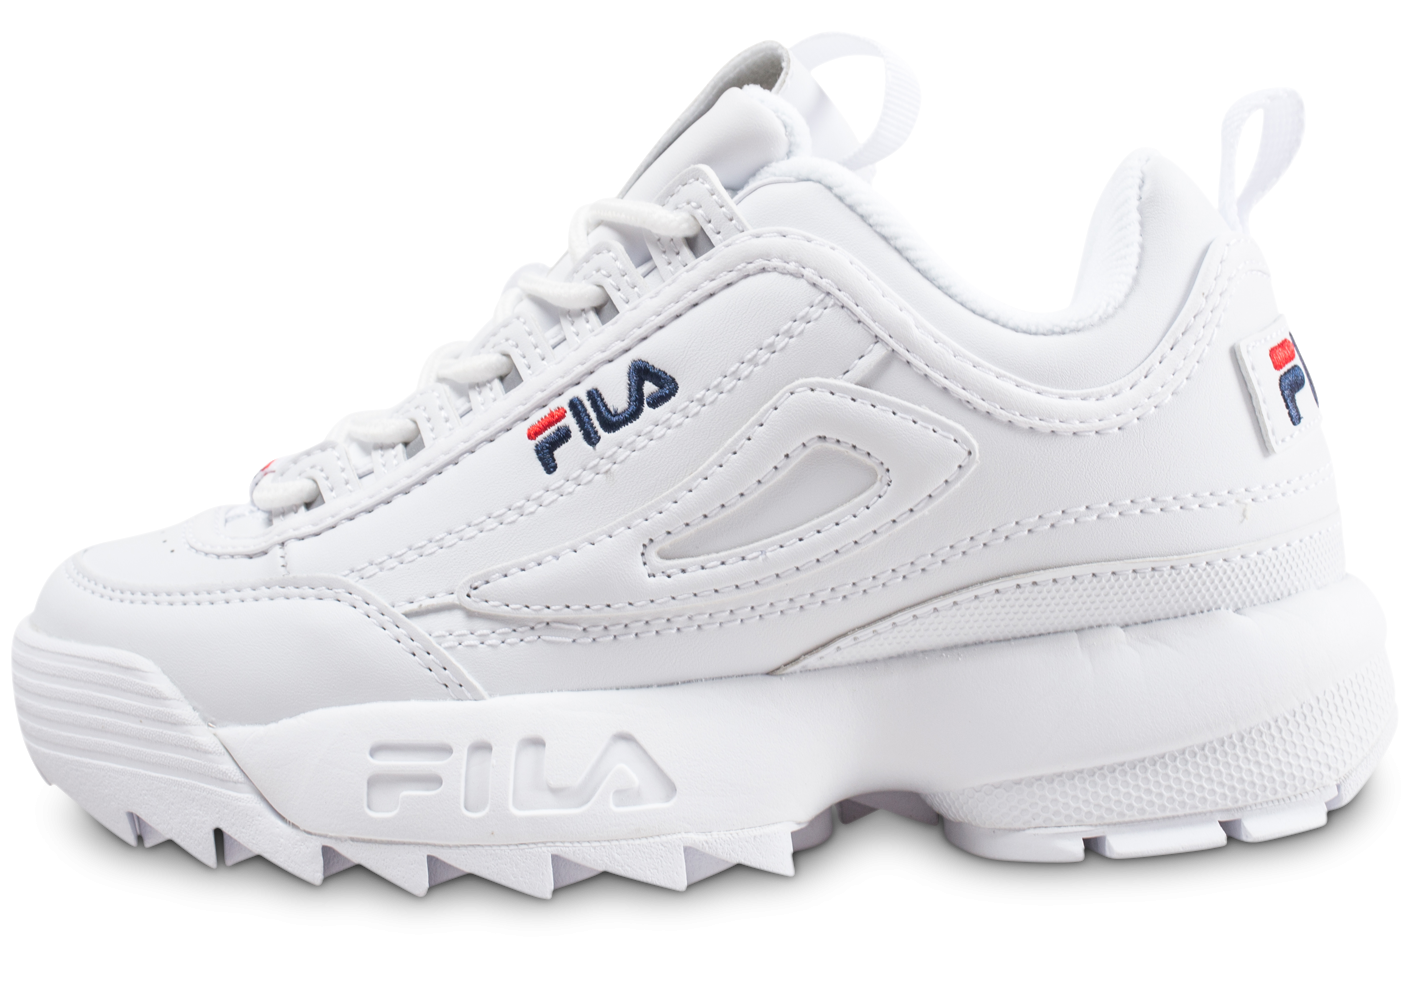 chaussure type fila autre marques